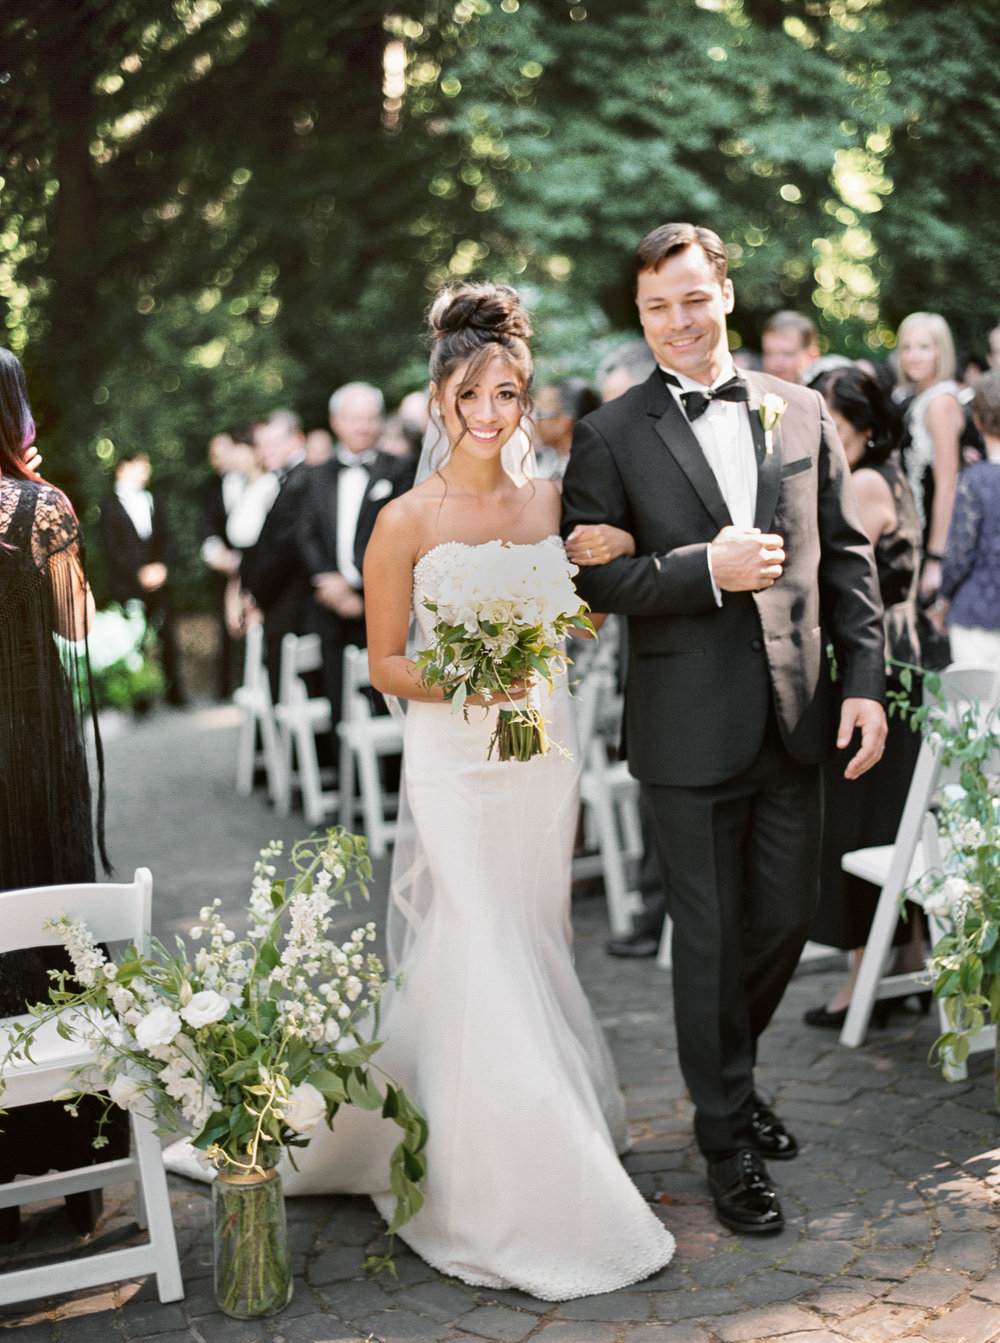 145OutliveCreative_Travel_Photographer_Videographer_Lewis&Clark_Oregon_Elegant_BlackTie_Destination_Wedding.jpg